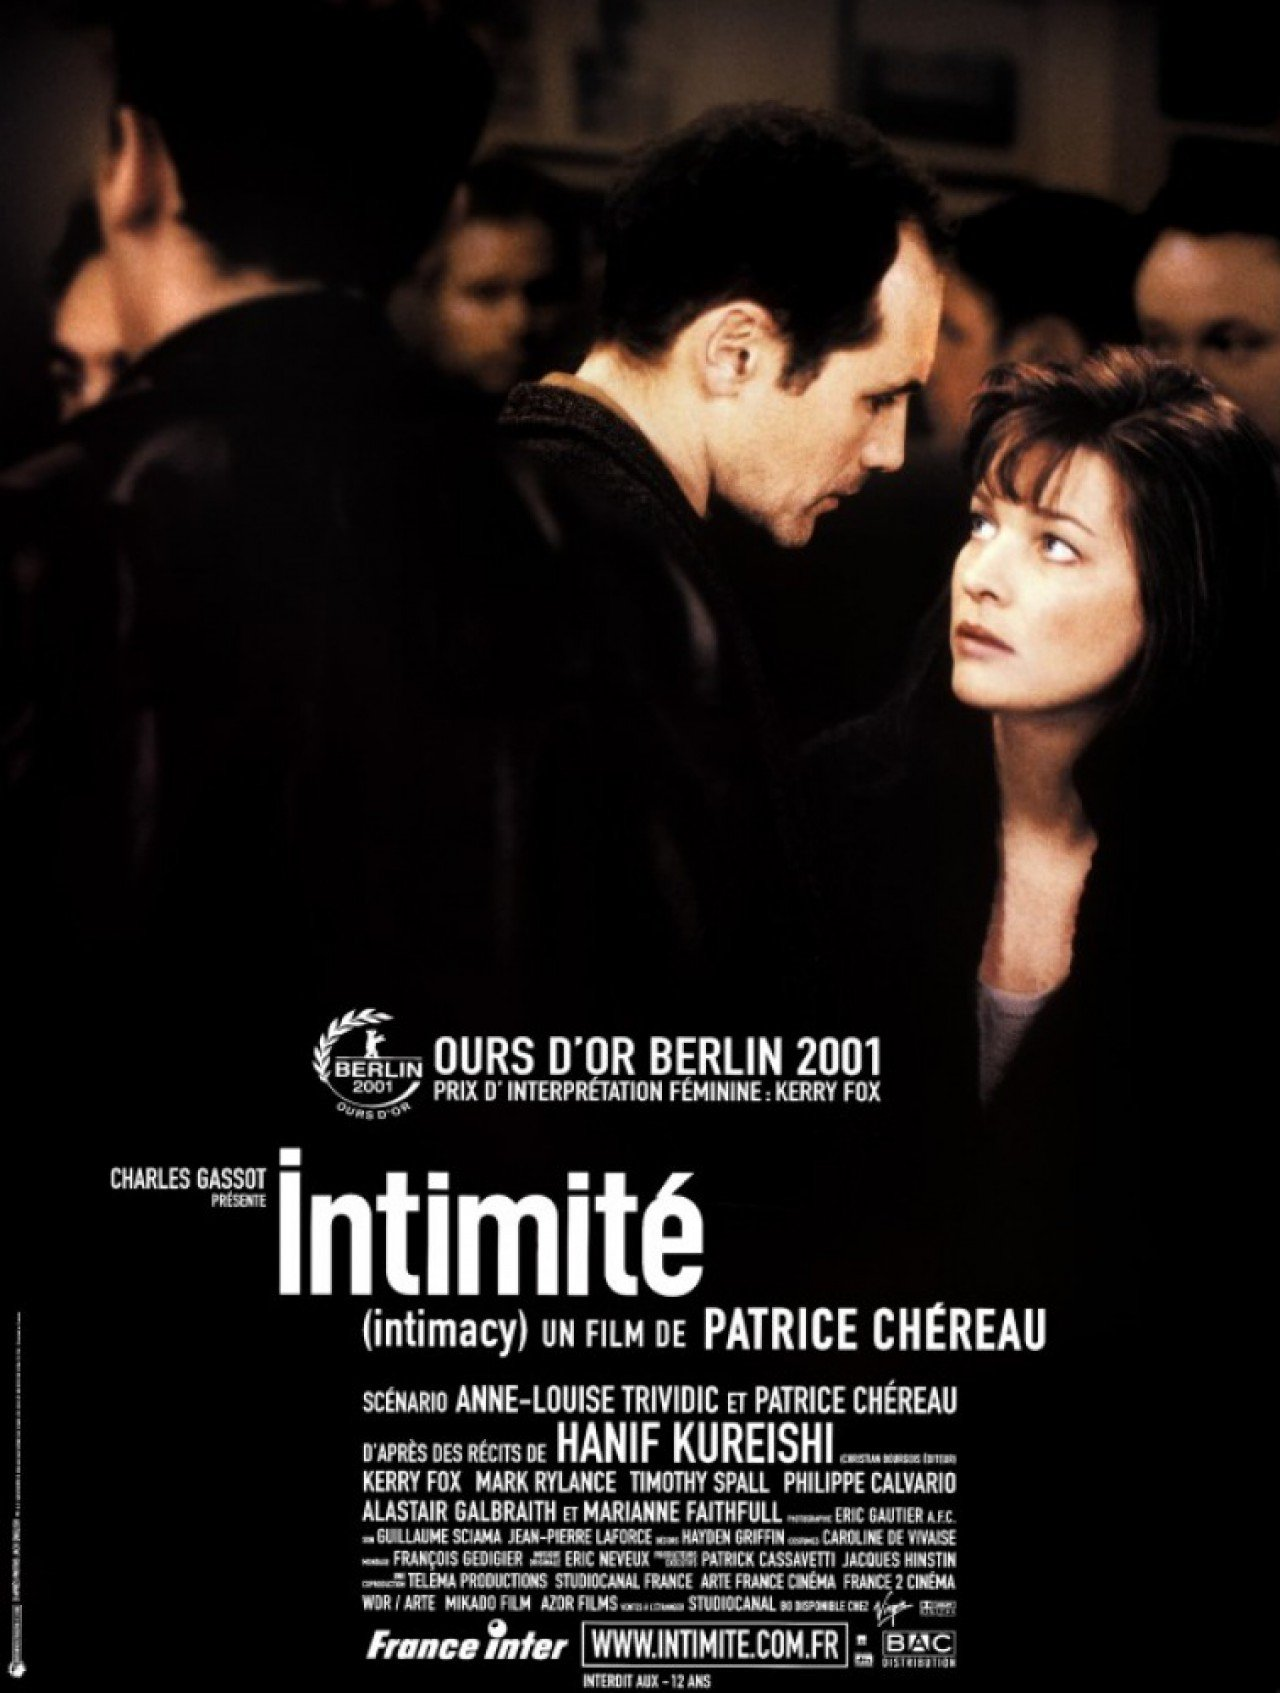 Intimacy poster image